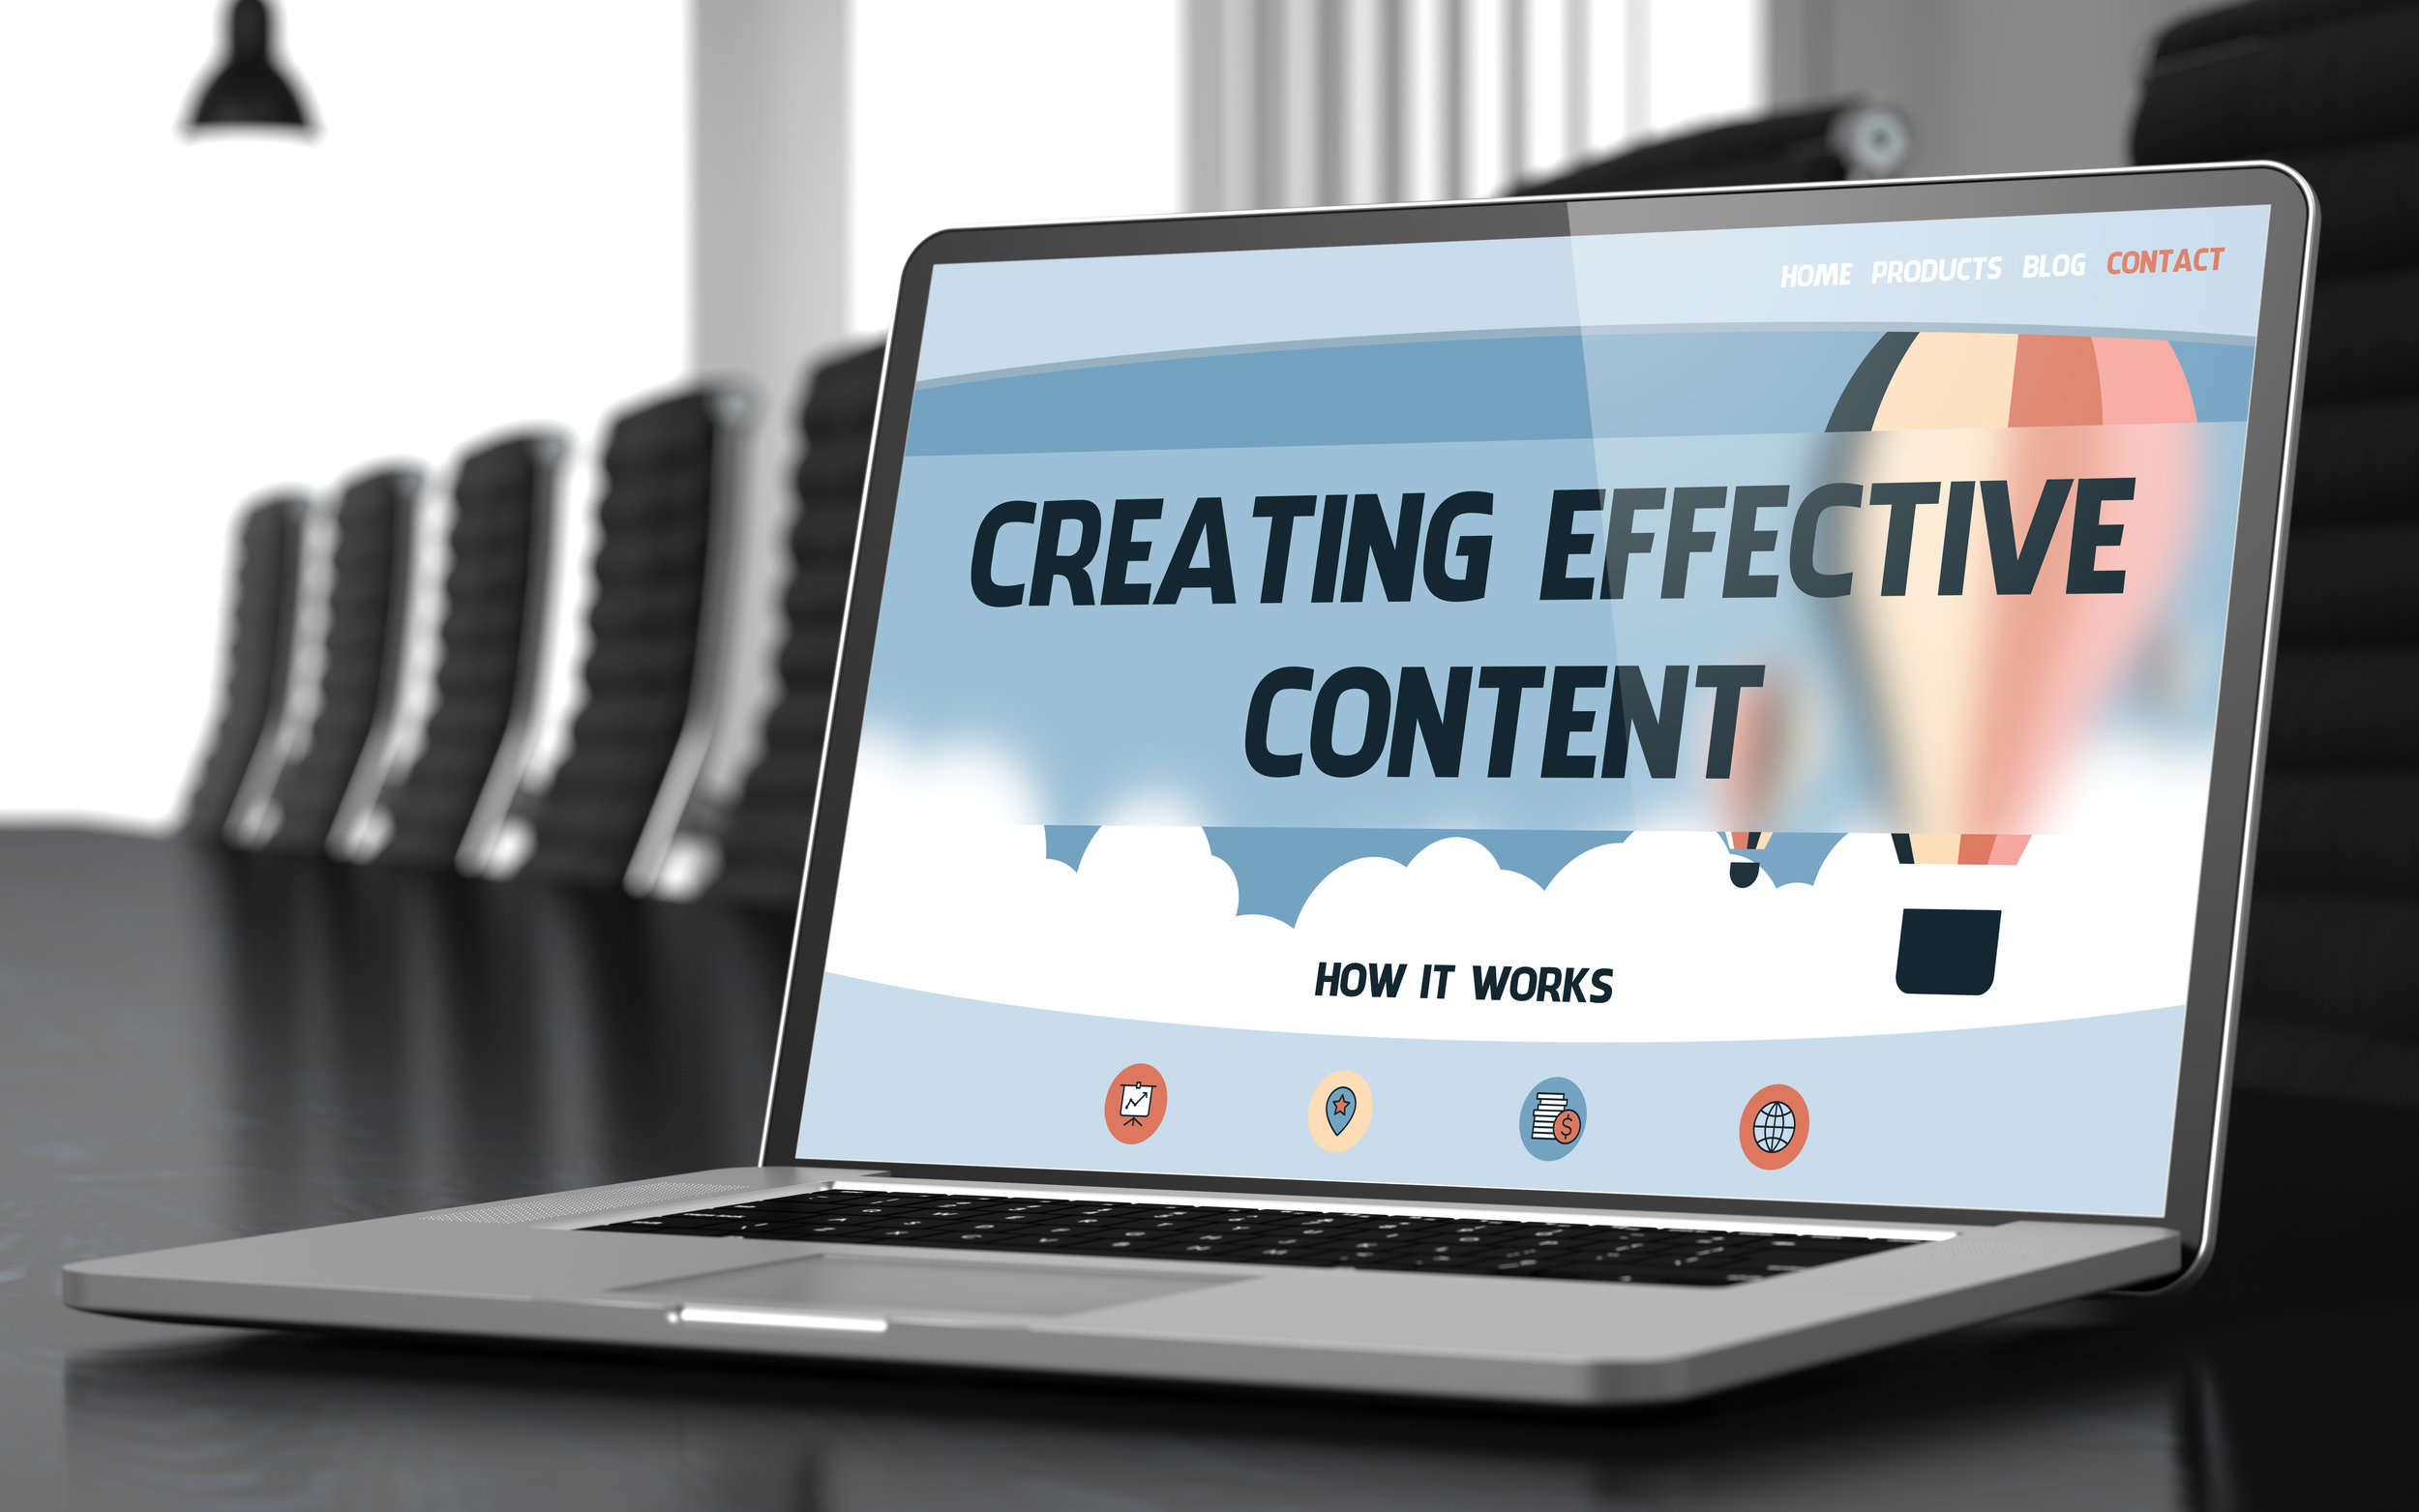 Content creation - Custom Images and Info-graphics, Initial Platform launch Intro and Message Videos, Creation of Graphics and Videos, Custom Logo Design,